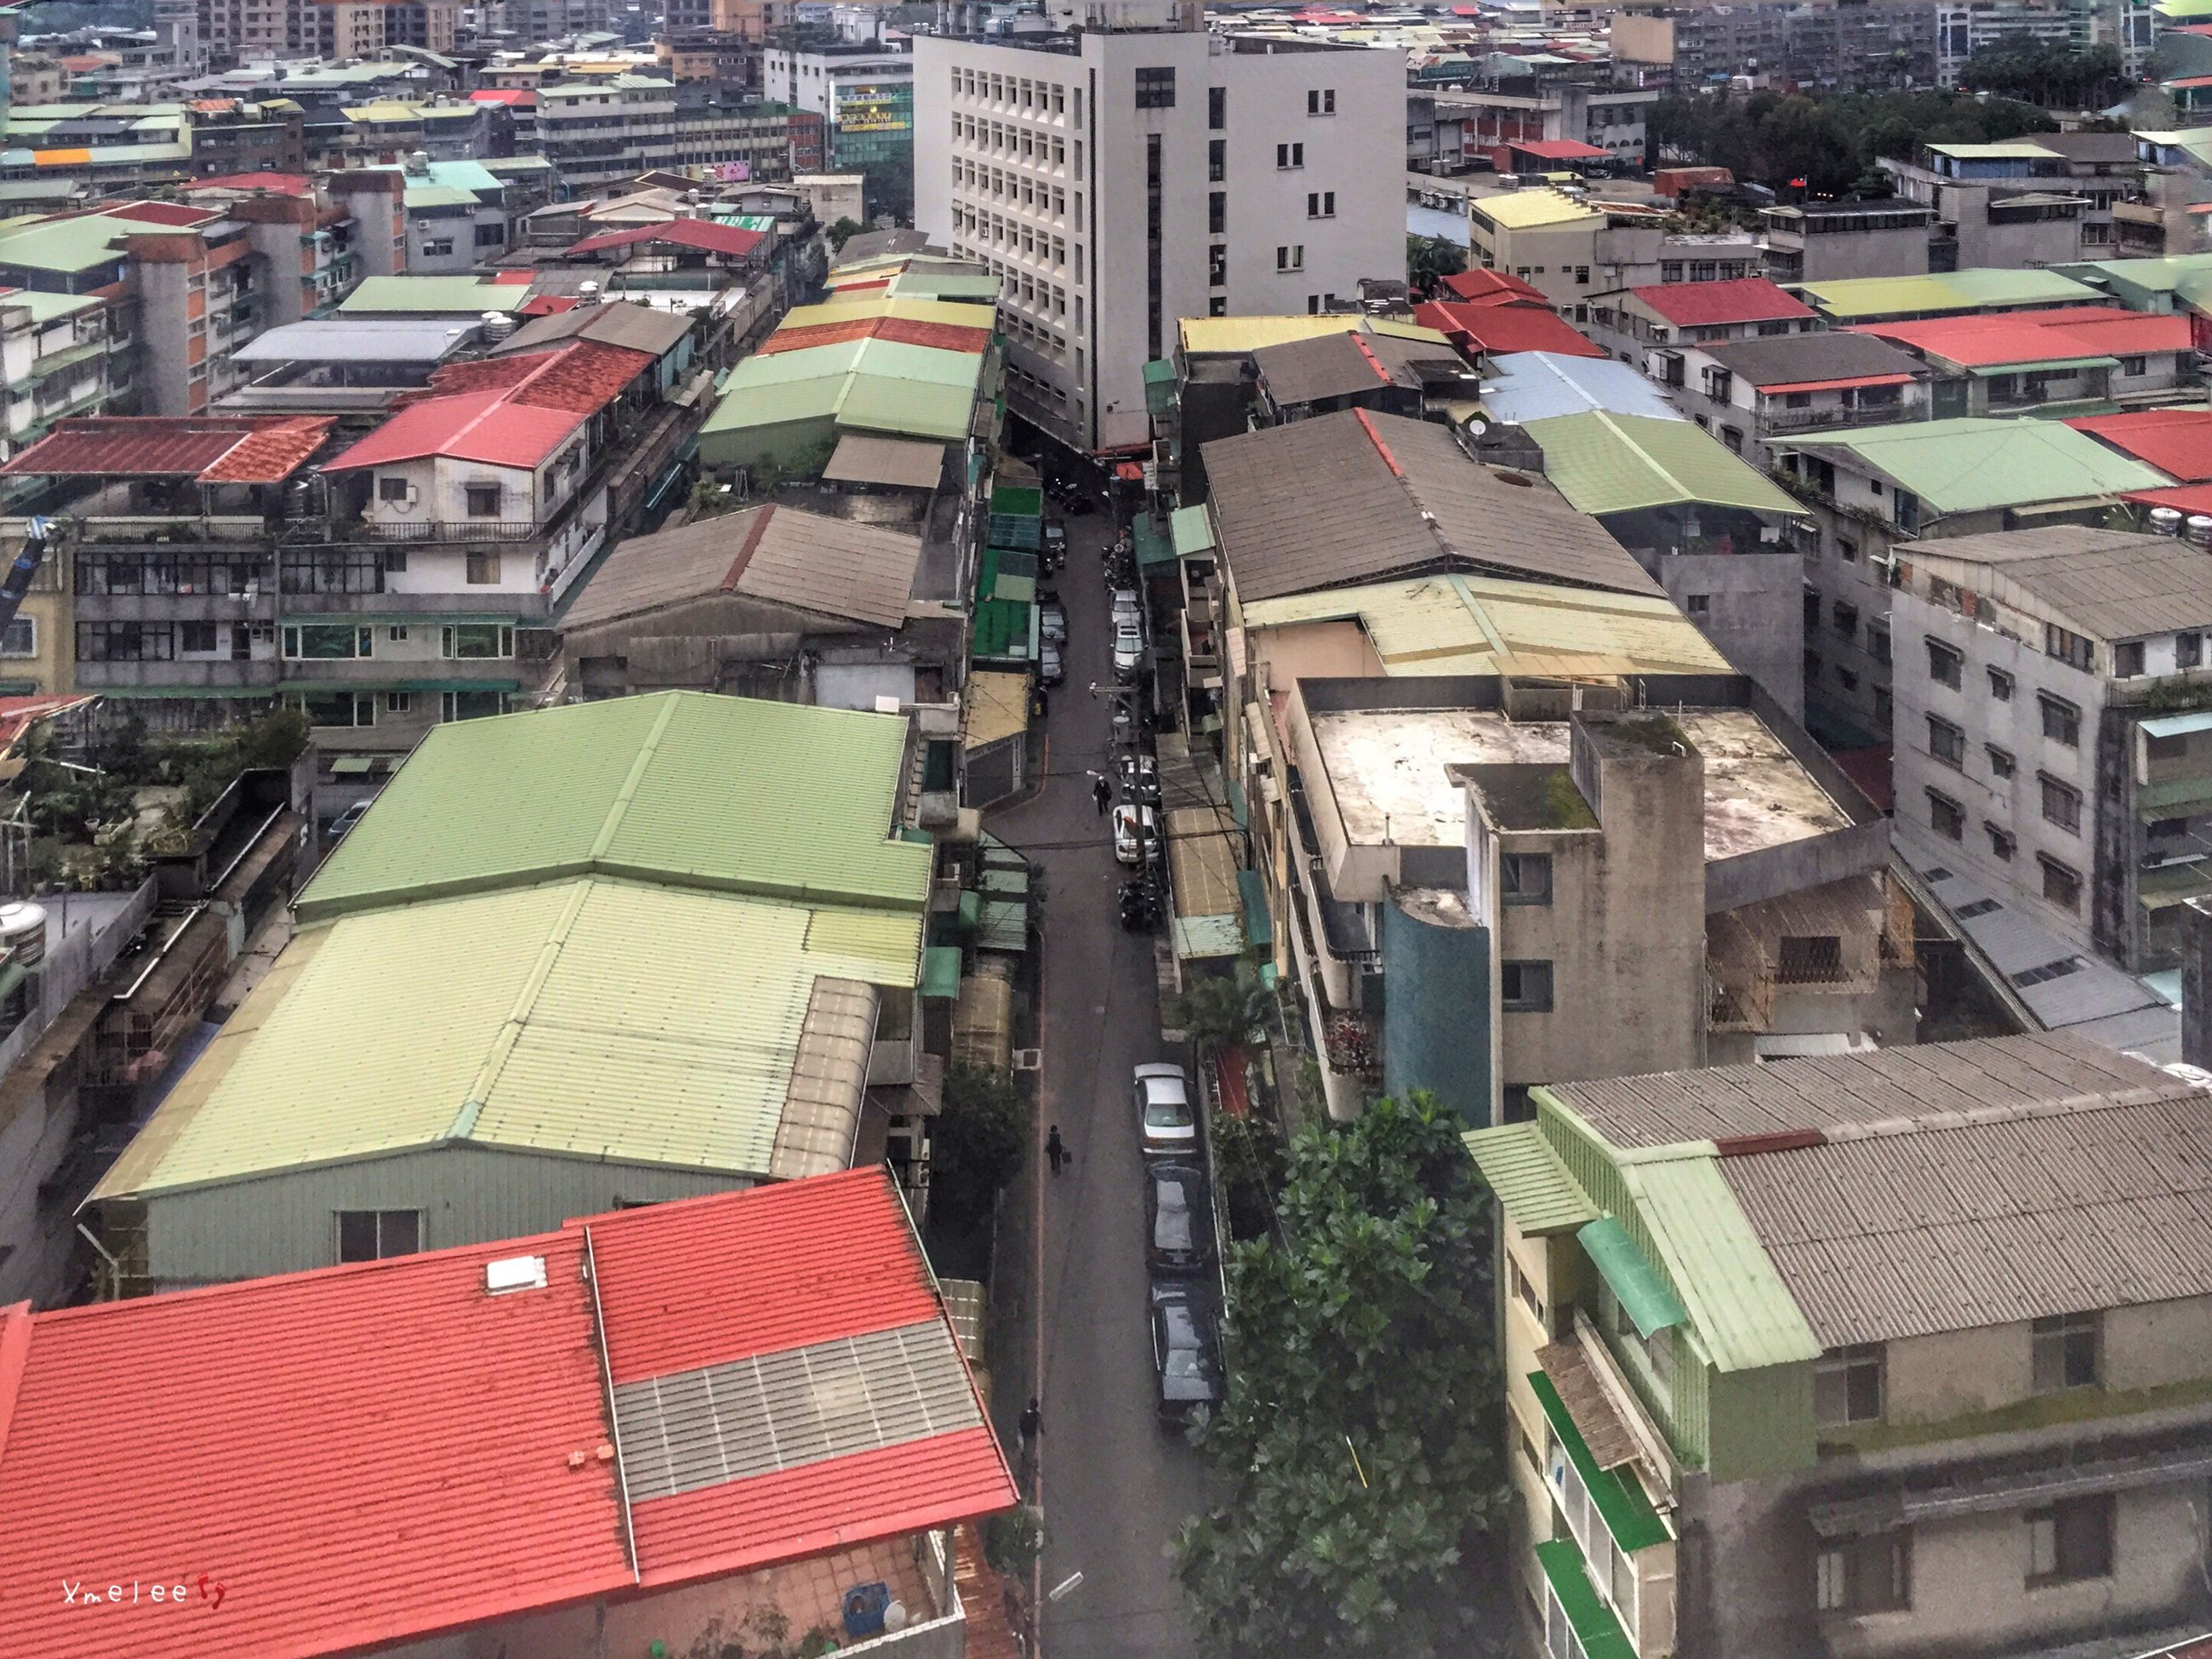 building exterior, architecture, built structure, roof, city, residential structure, high angle view, residential building, house, residential district, crowded, town, day, cityscape, outdoors, building, rooftop, city life, roof tile, no people